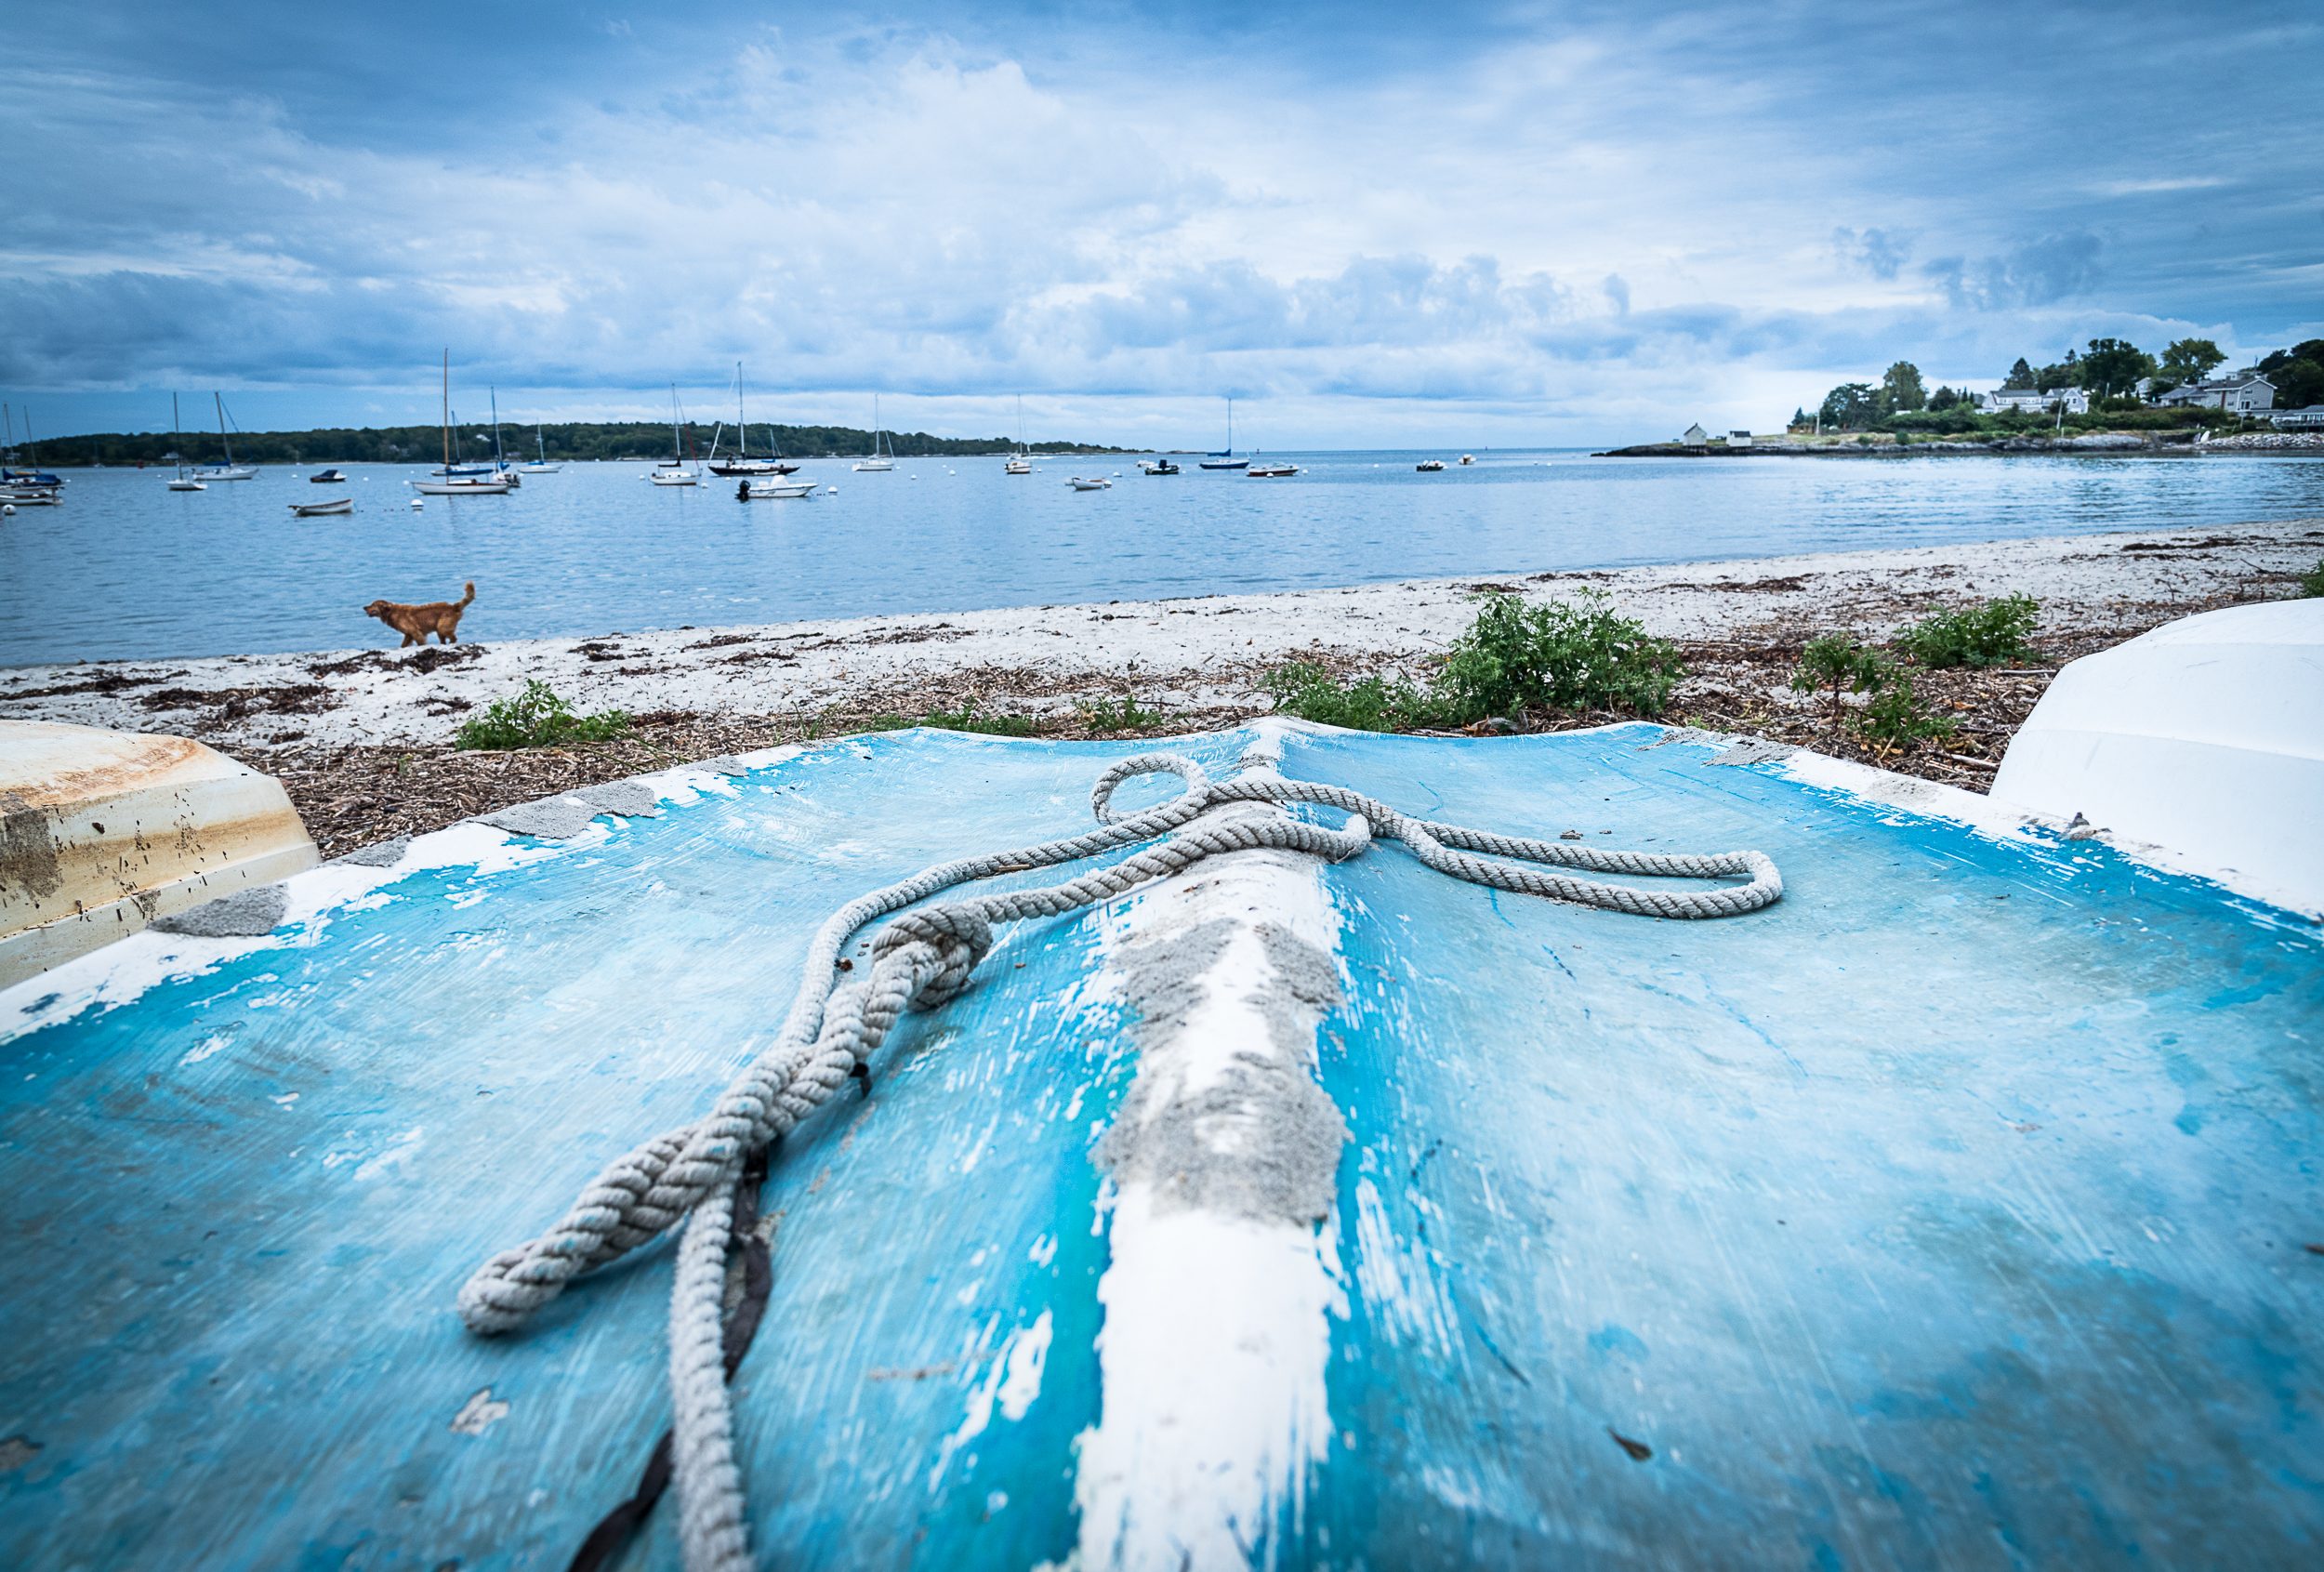 The Boats of Willard Beach, South Portland, Maine